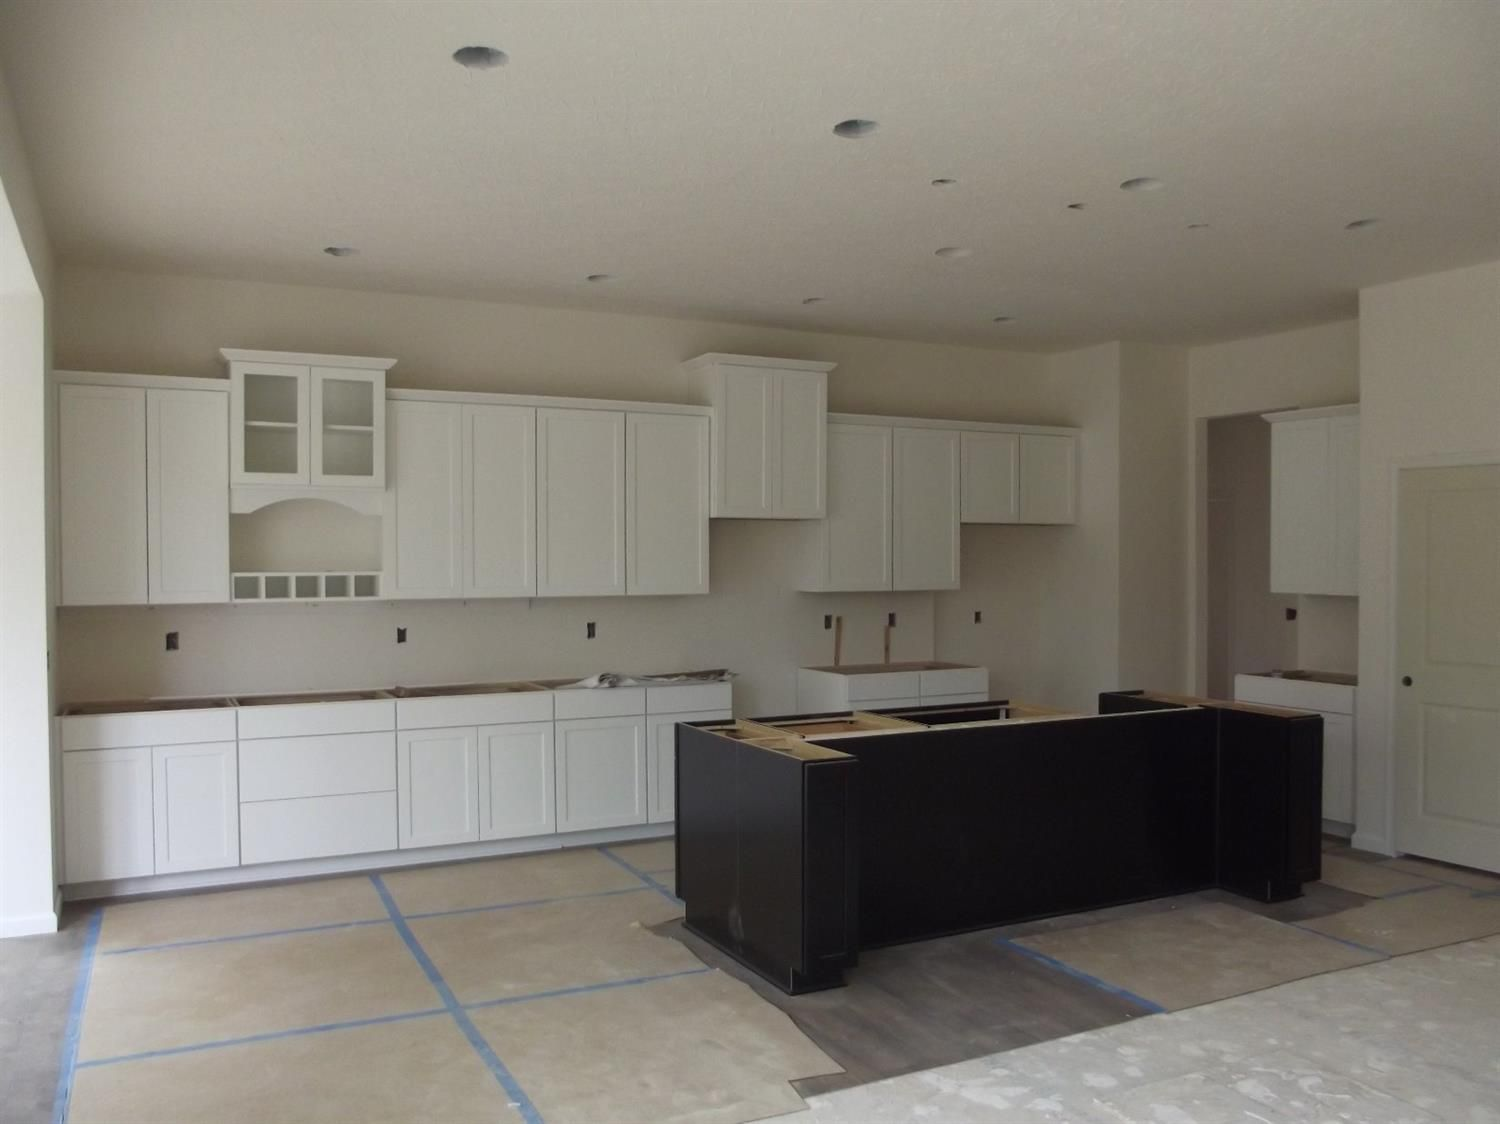 ryan homes springmanor kitchen shaker cabinets our new home